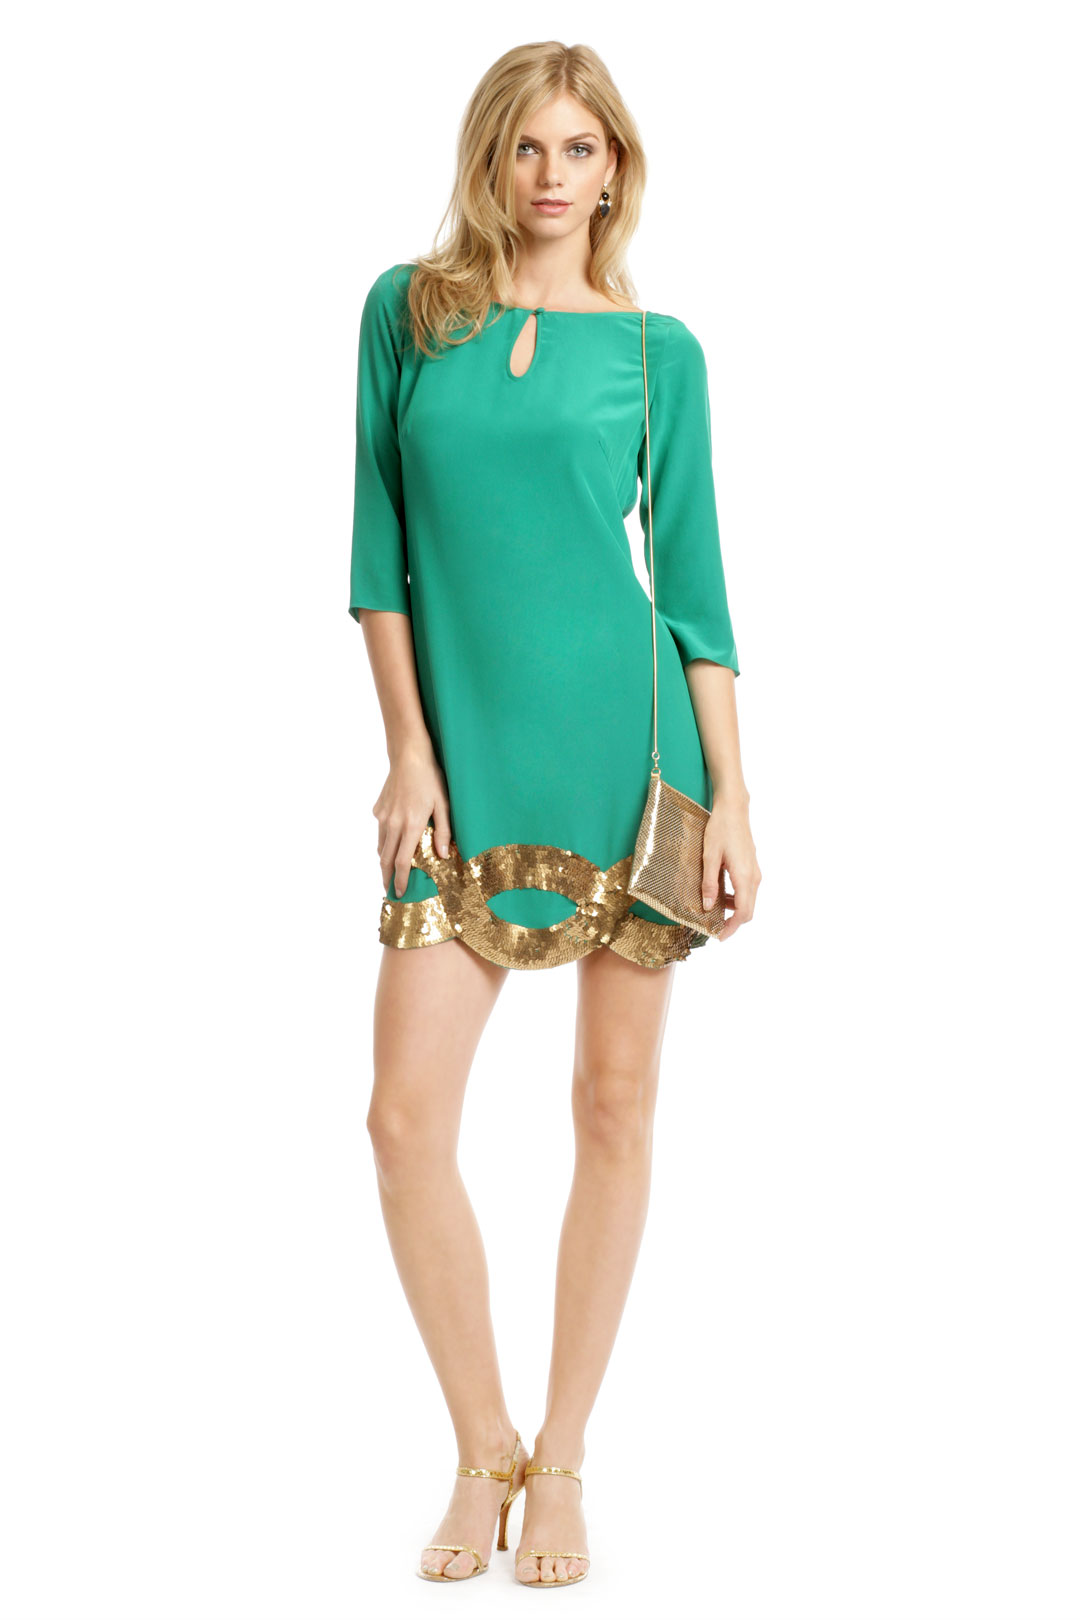 d76a0f59c59 Brighten up your day and your look with a Trina Turk dress and everything  will be just fine.